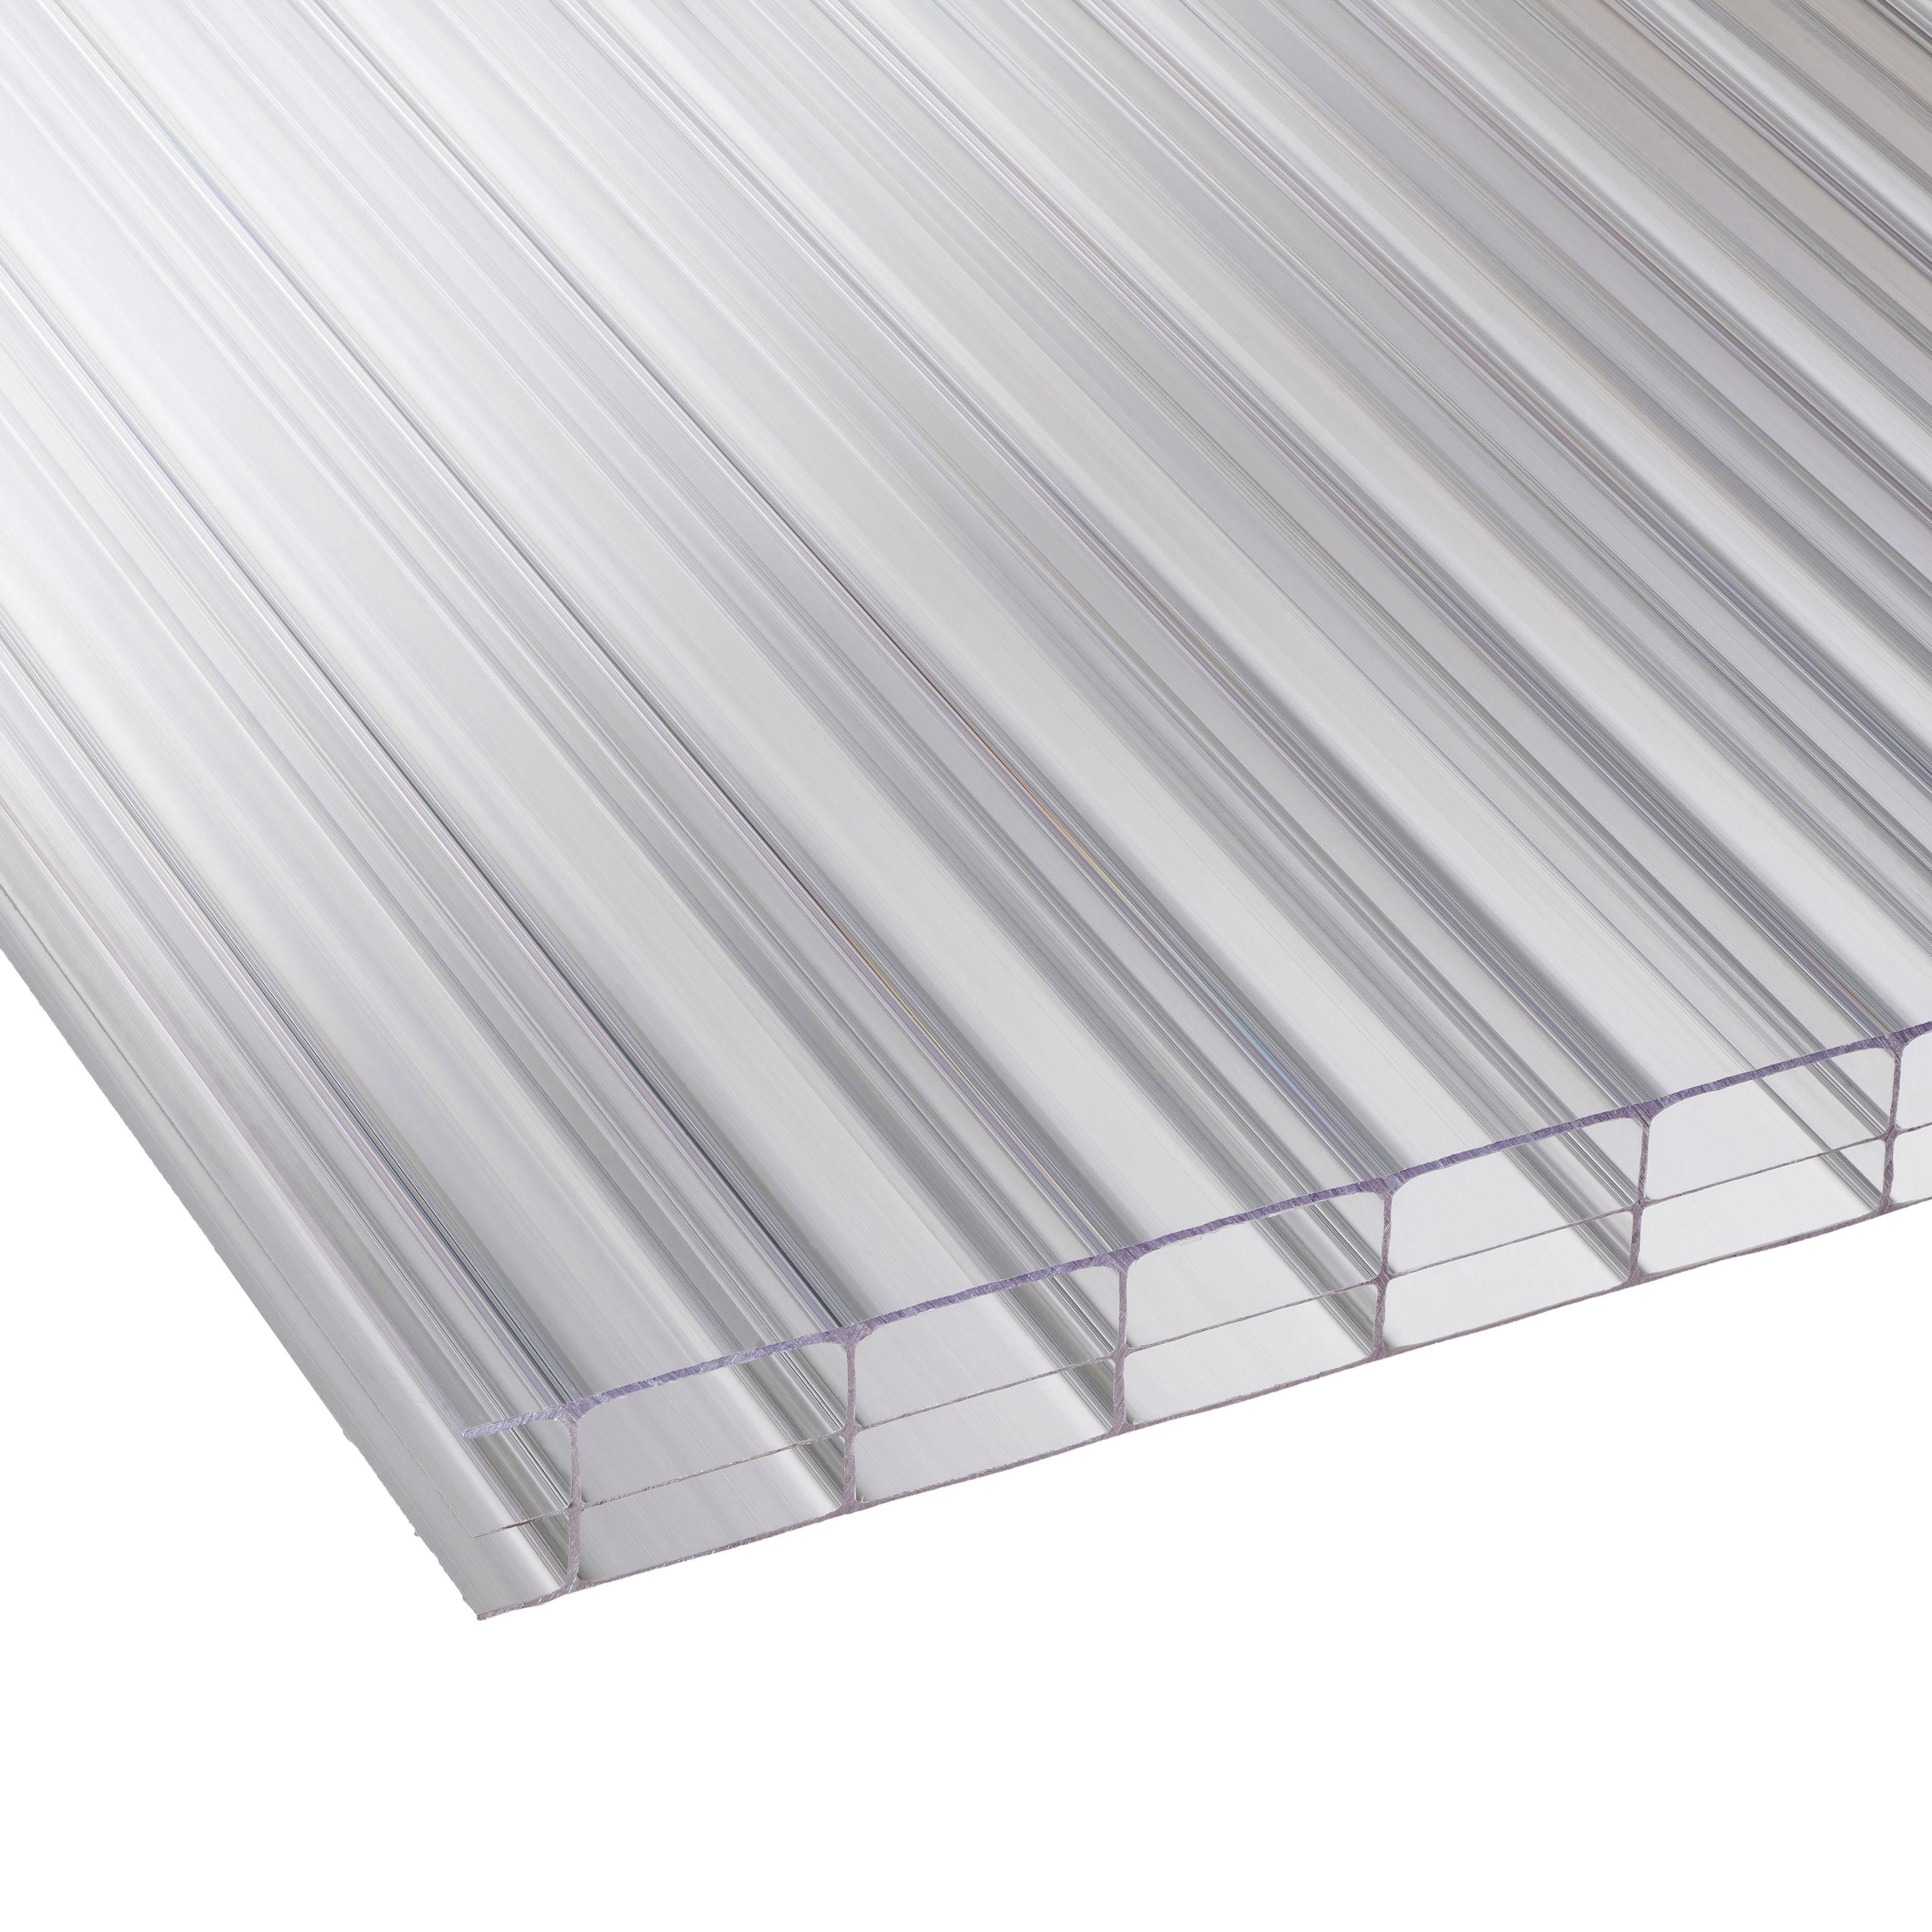 Clear Multiwall Polycarbonate Roofing Sheet 3m X 1050mm, Pack Of 5